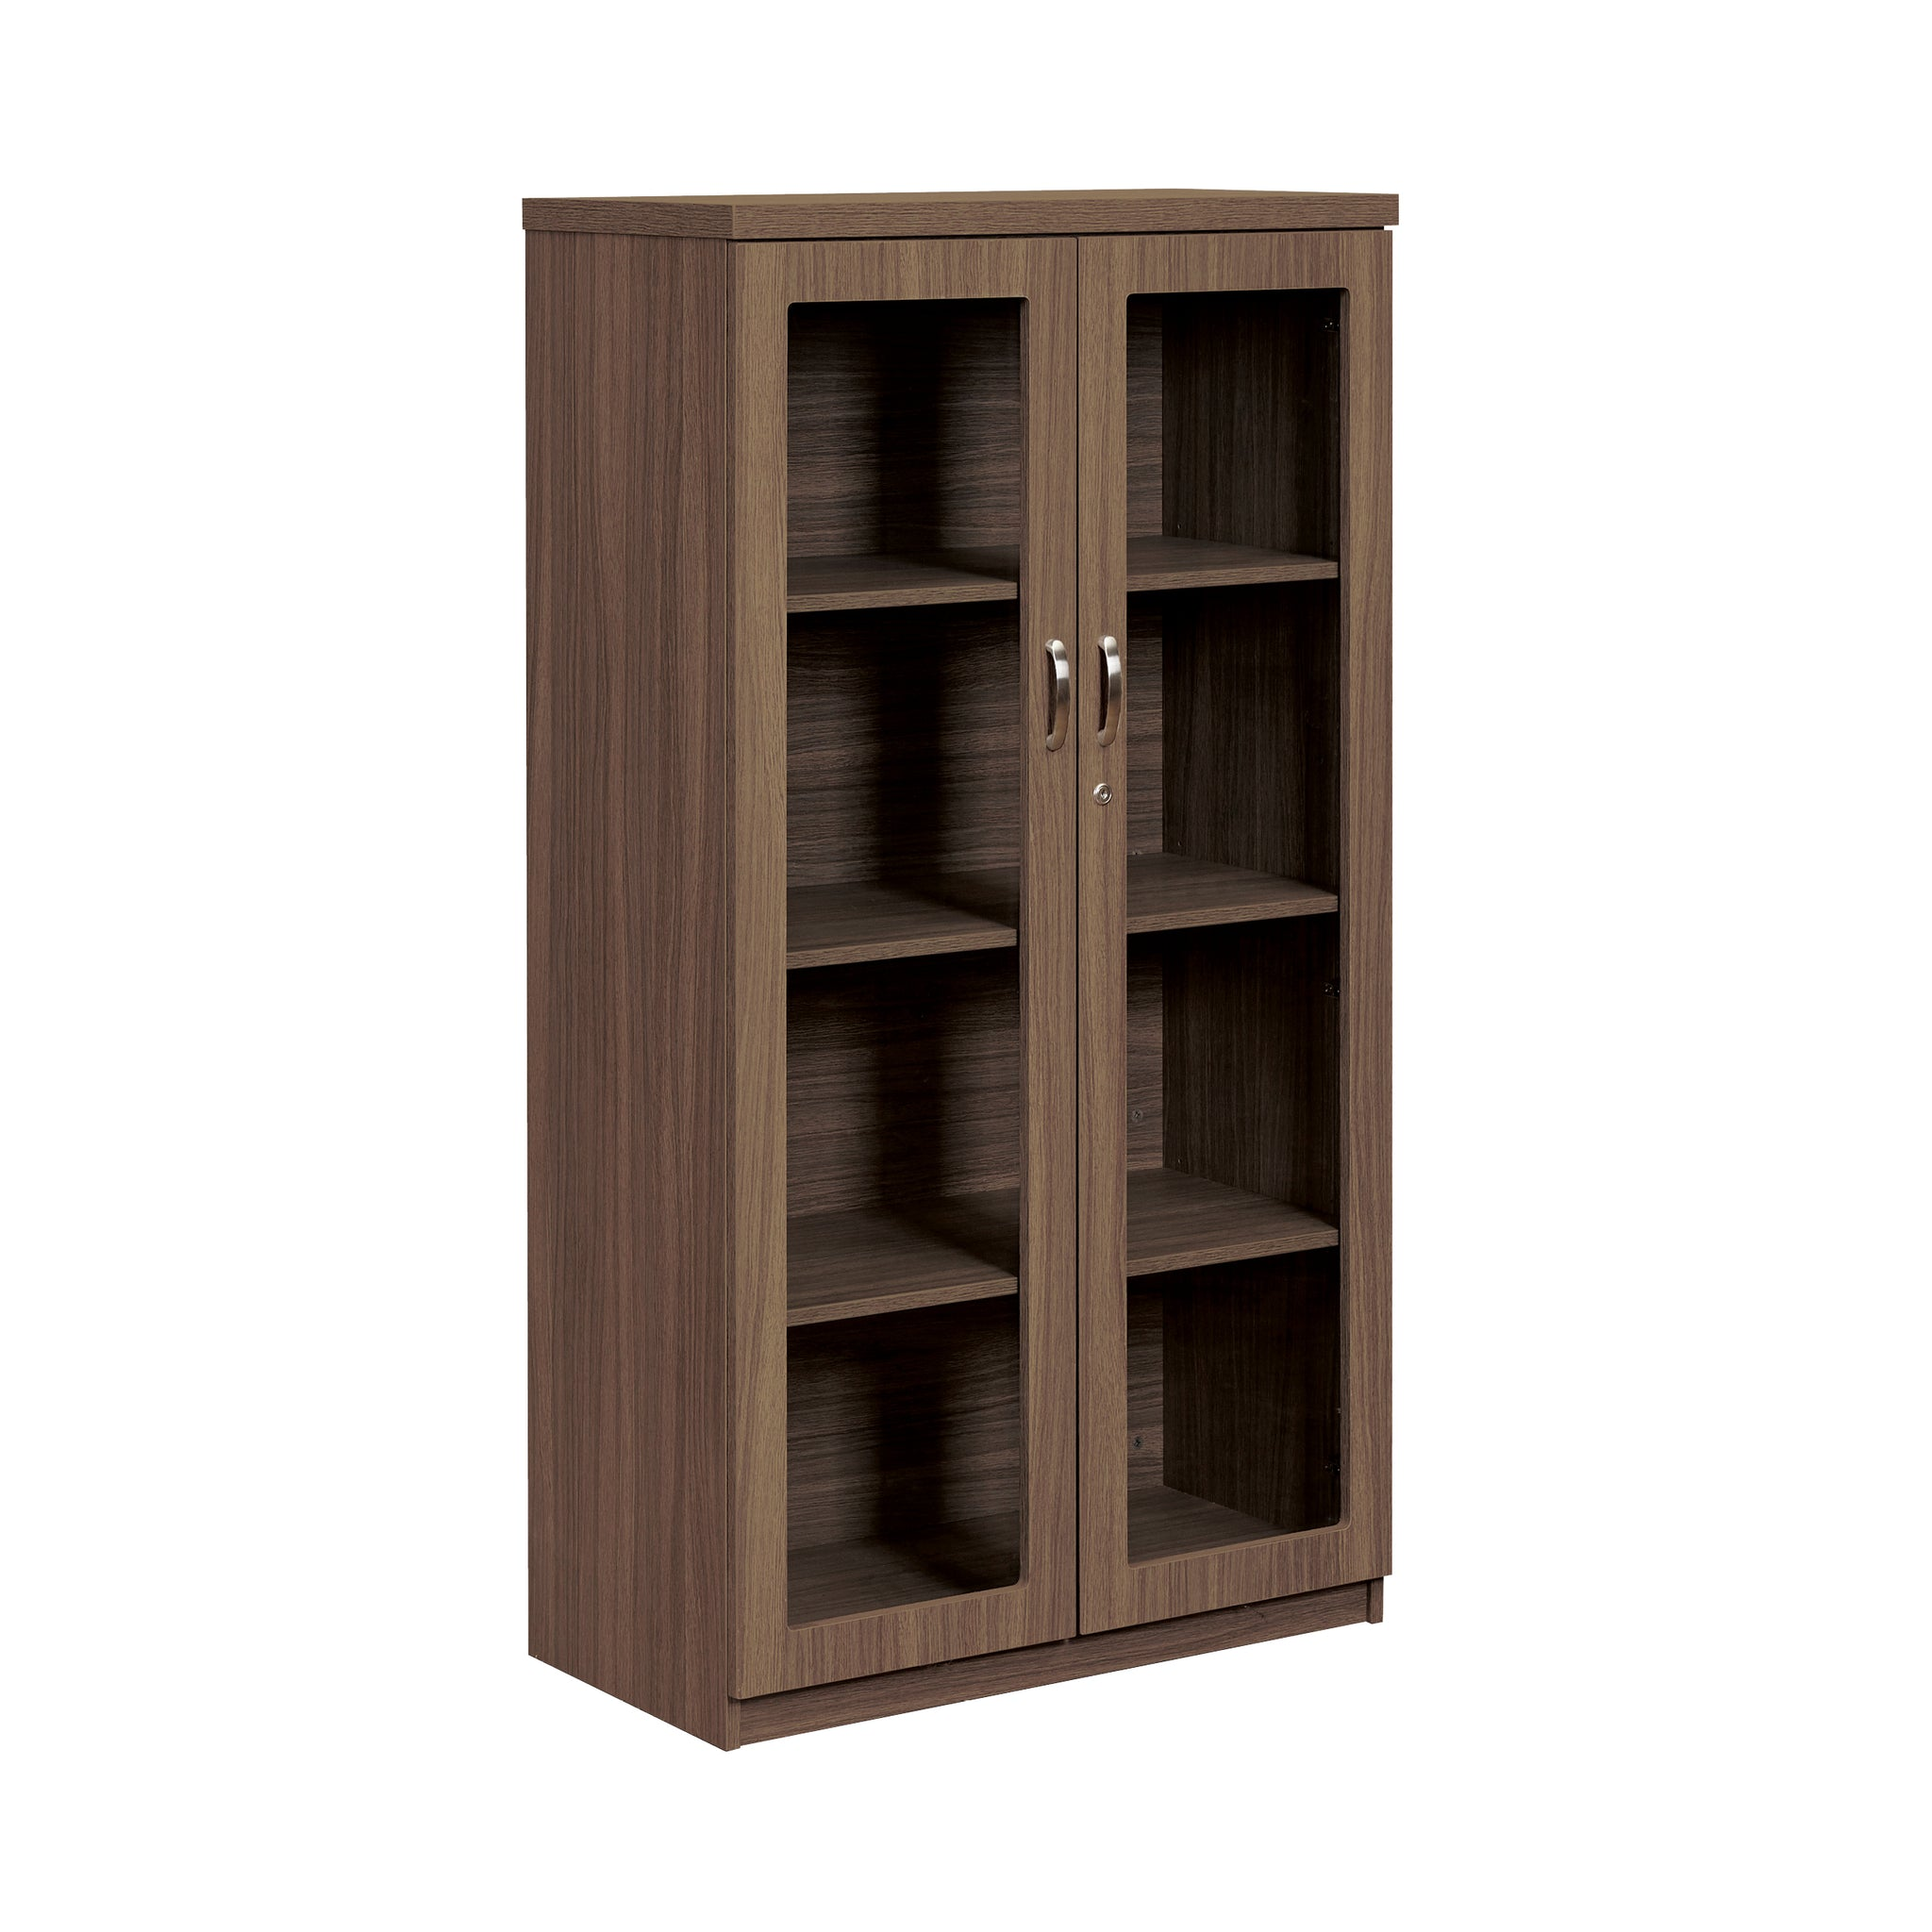 Hedcor Cobalt 32 Bookcase glass inlay